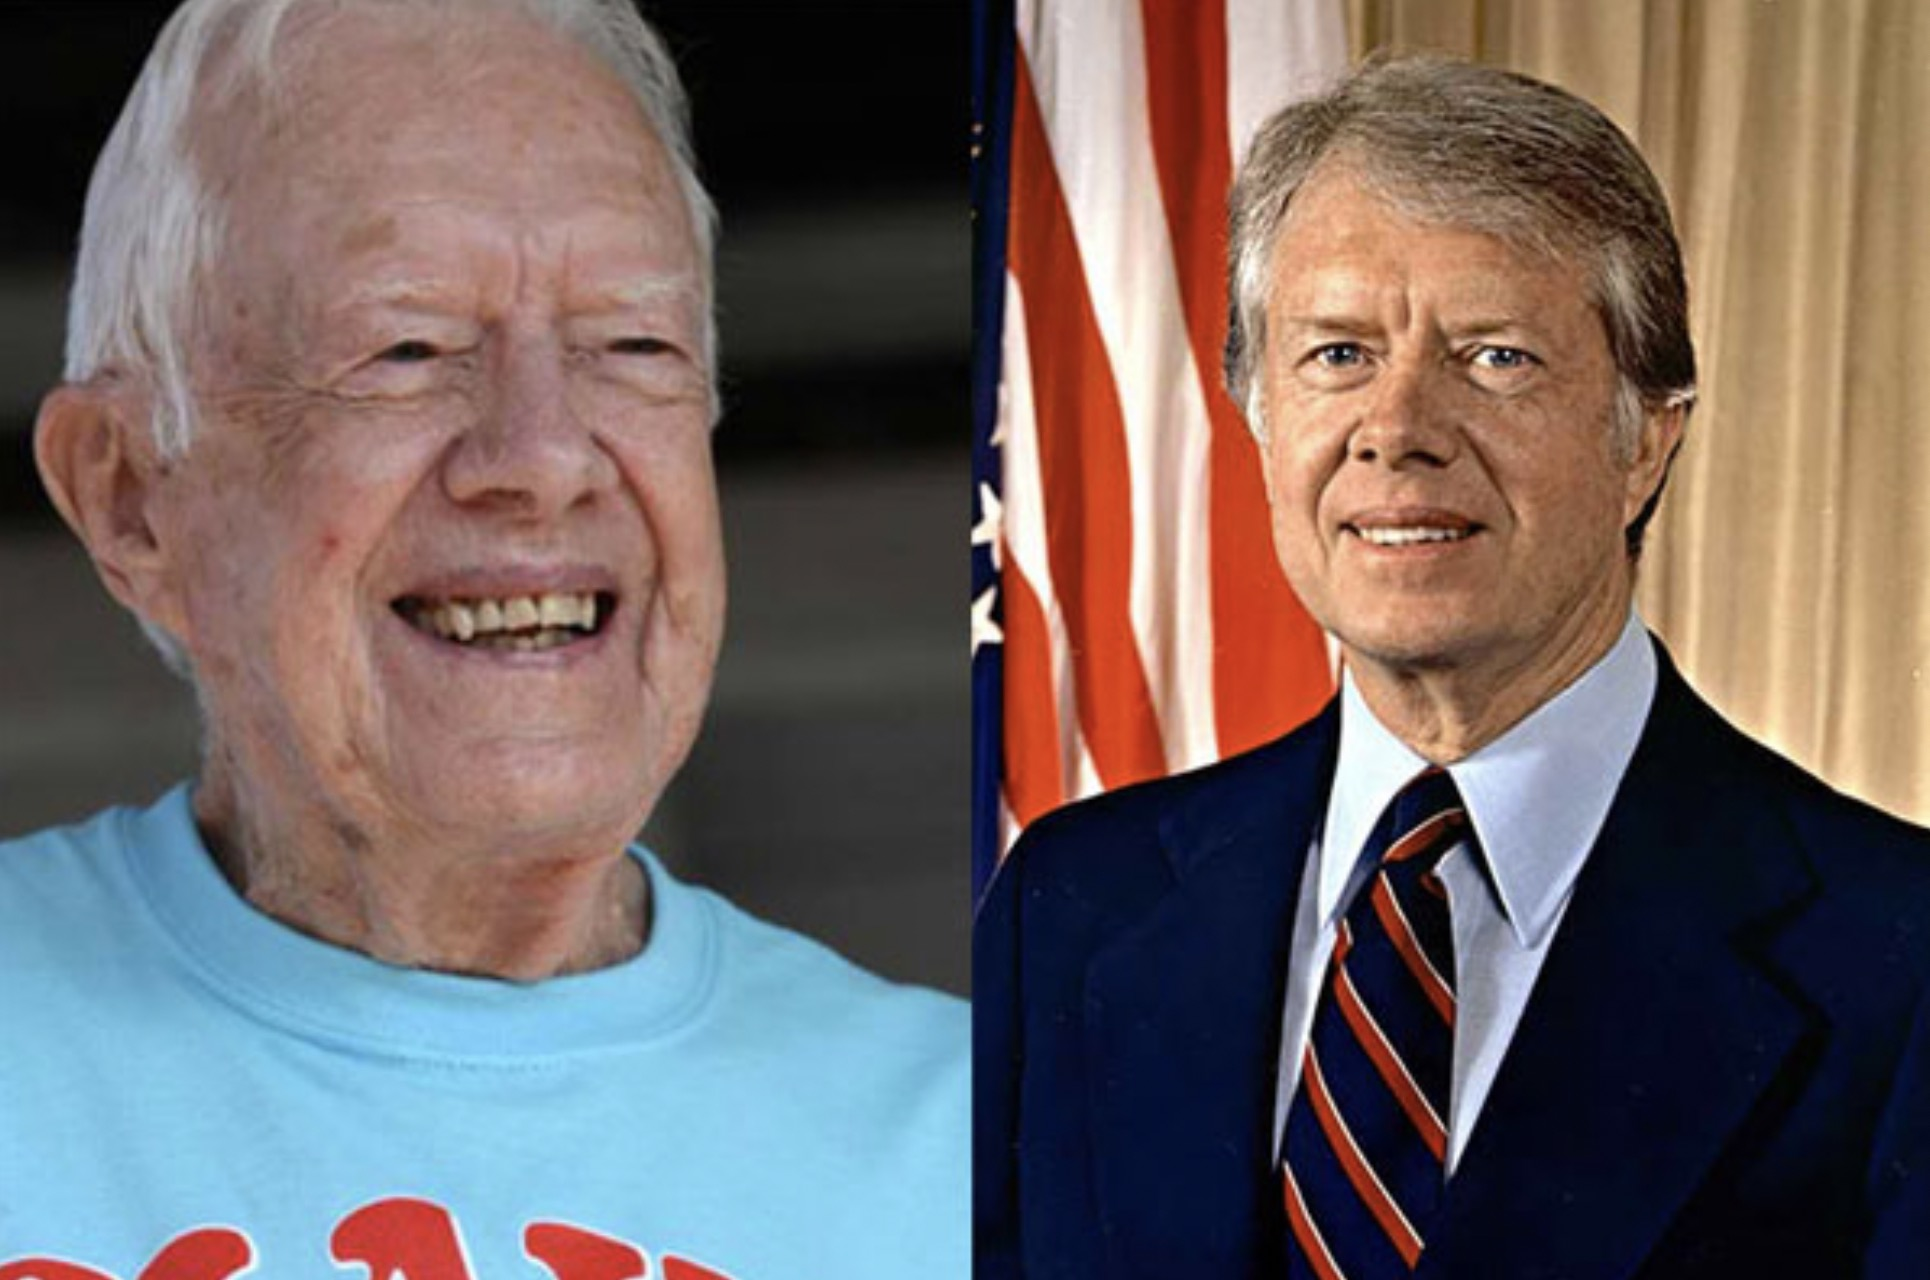 JIMMY CARTER 93 YEARS OLD